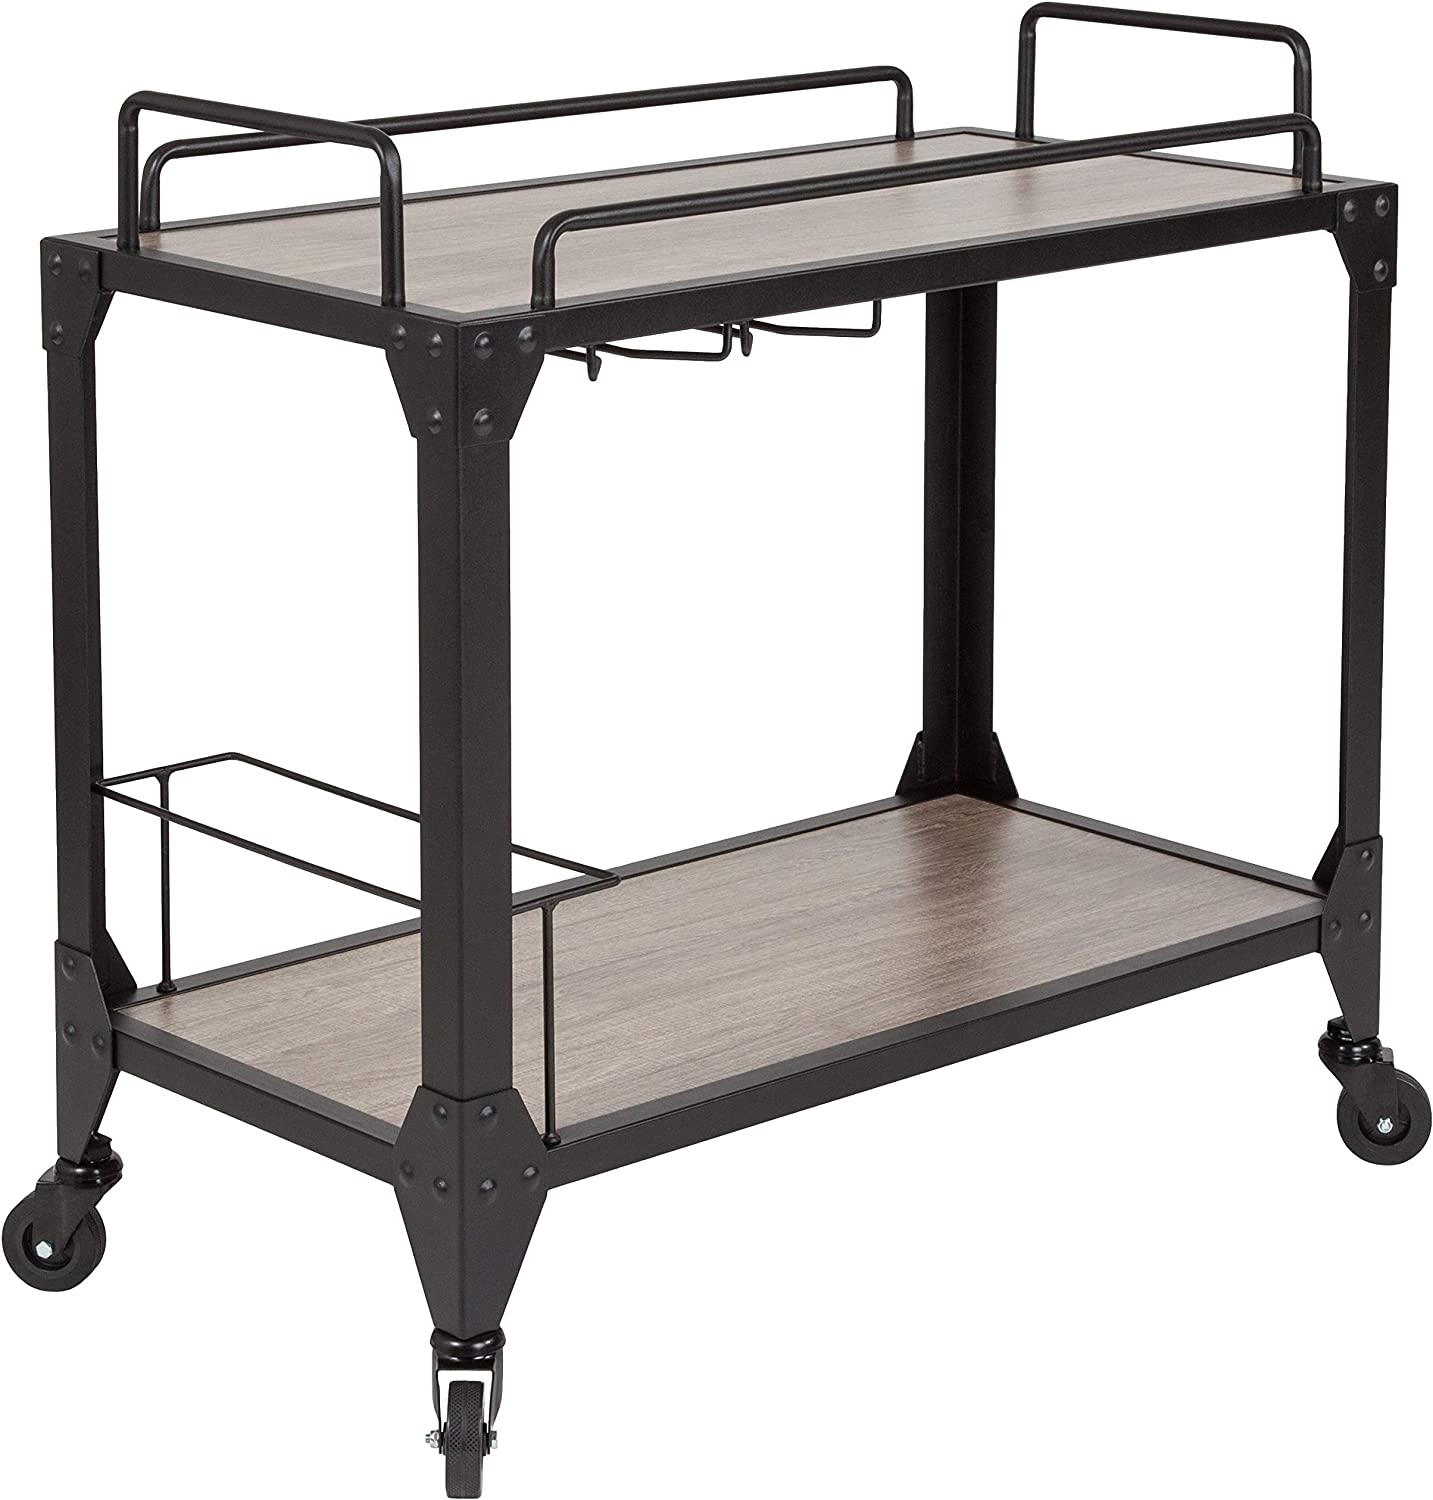 Taylor Logan Kitchen Serving and Bar Cart with Wine Glass Holders, Light Oak Wood and Iron